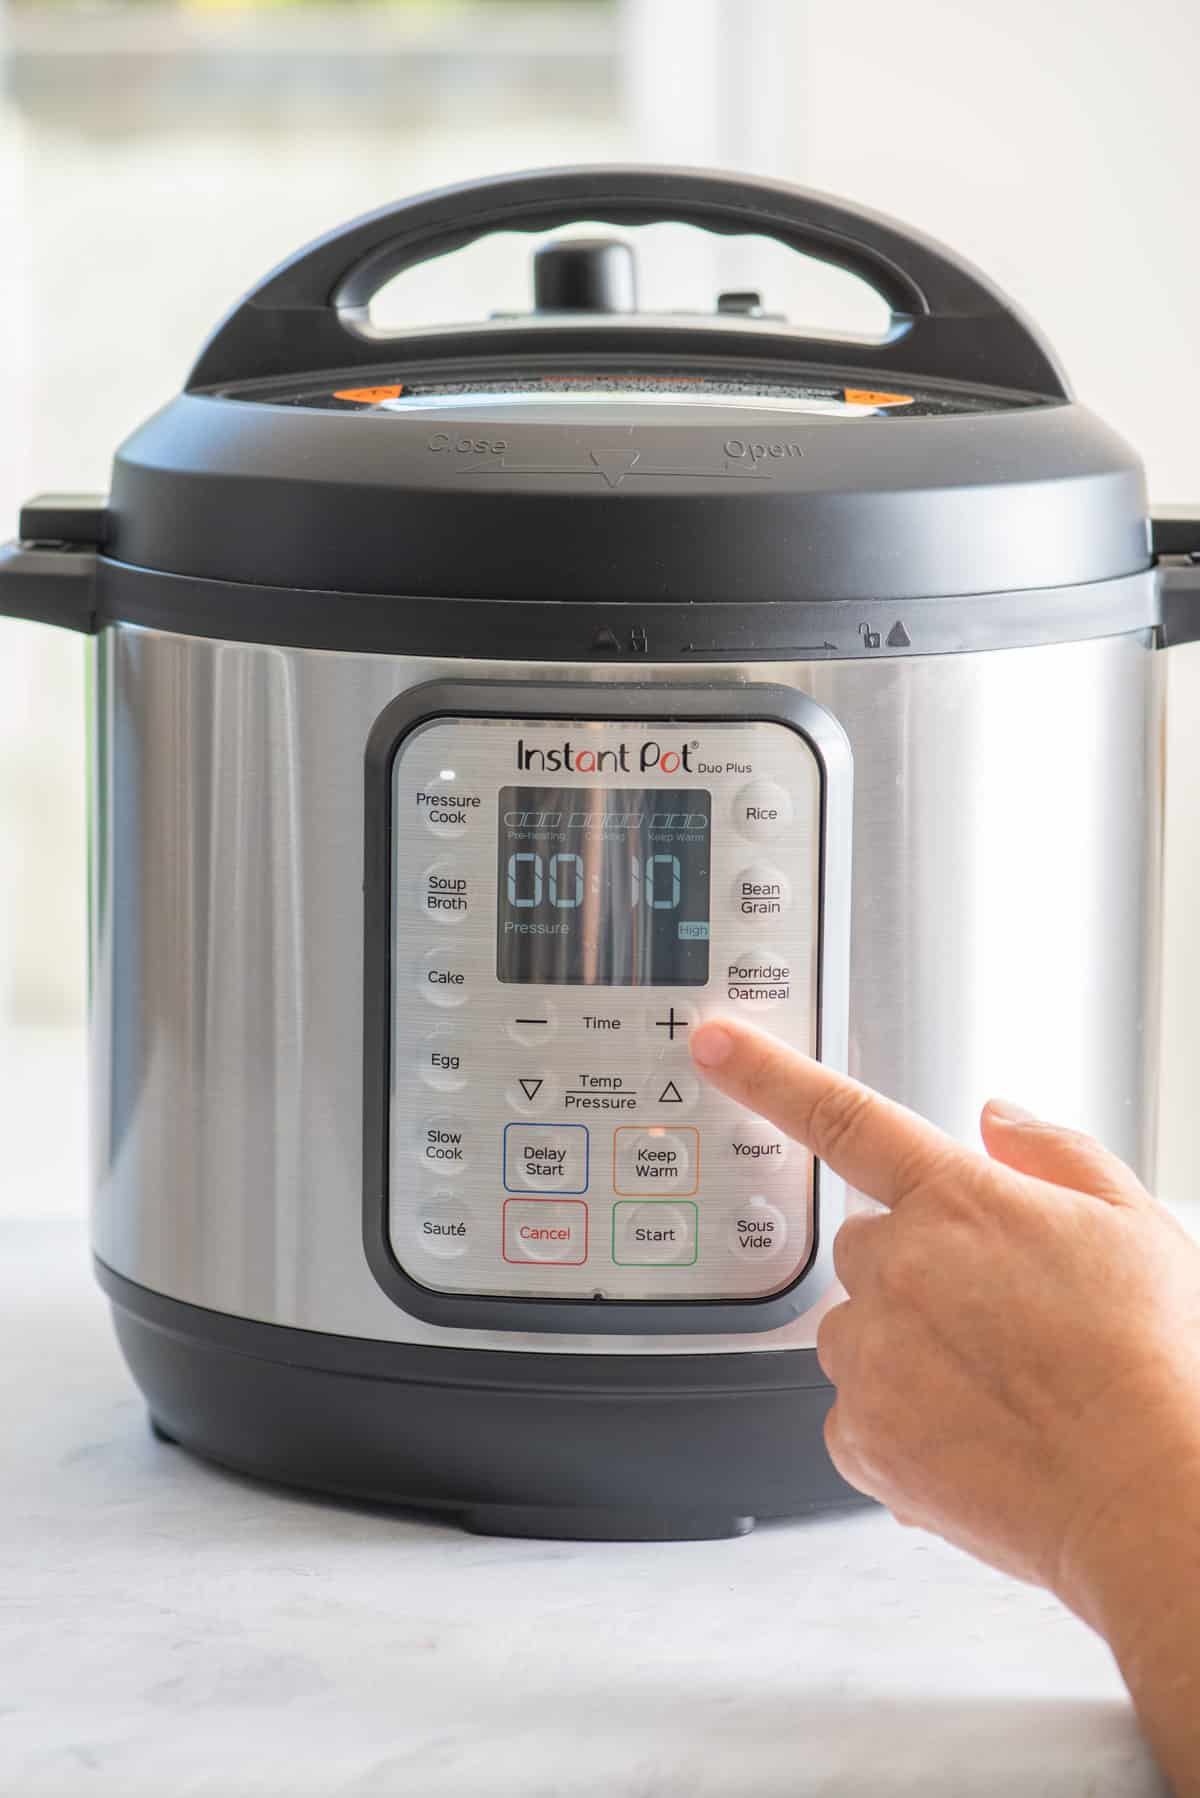 Selecting timer on Instant Pot for the chicken recipe